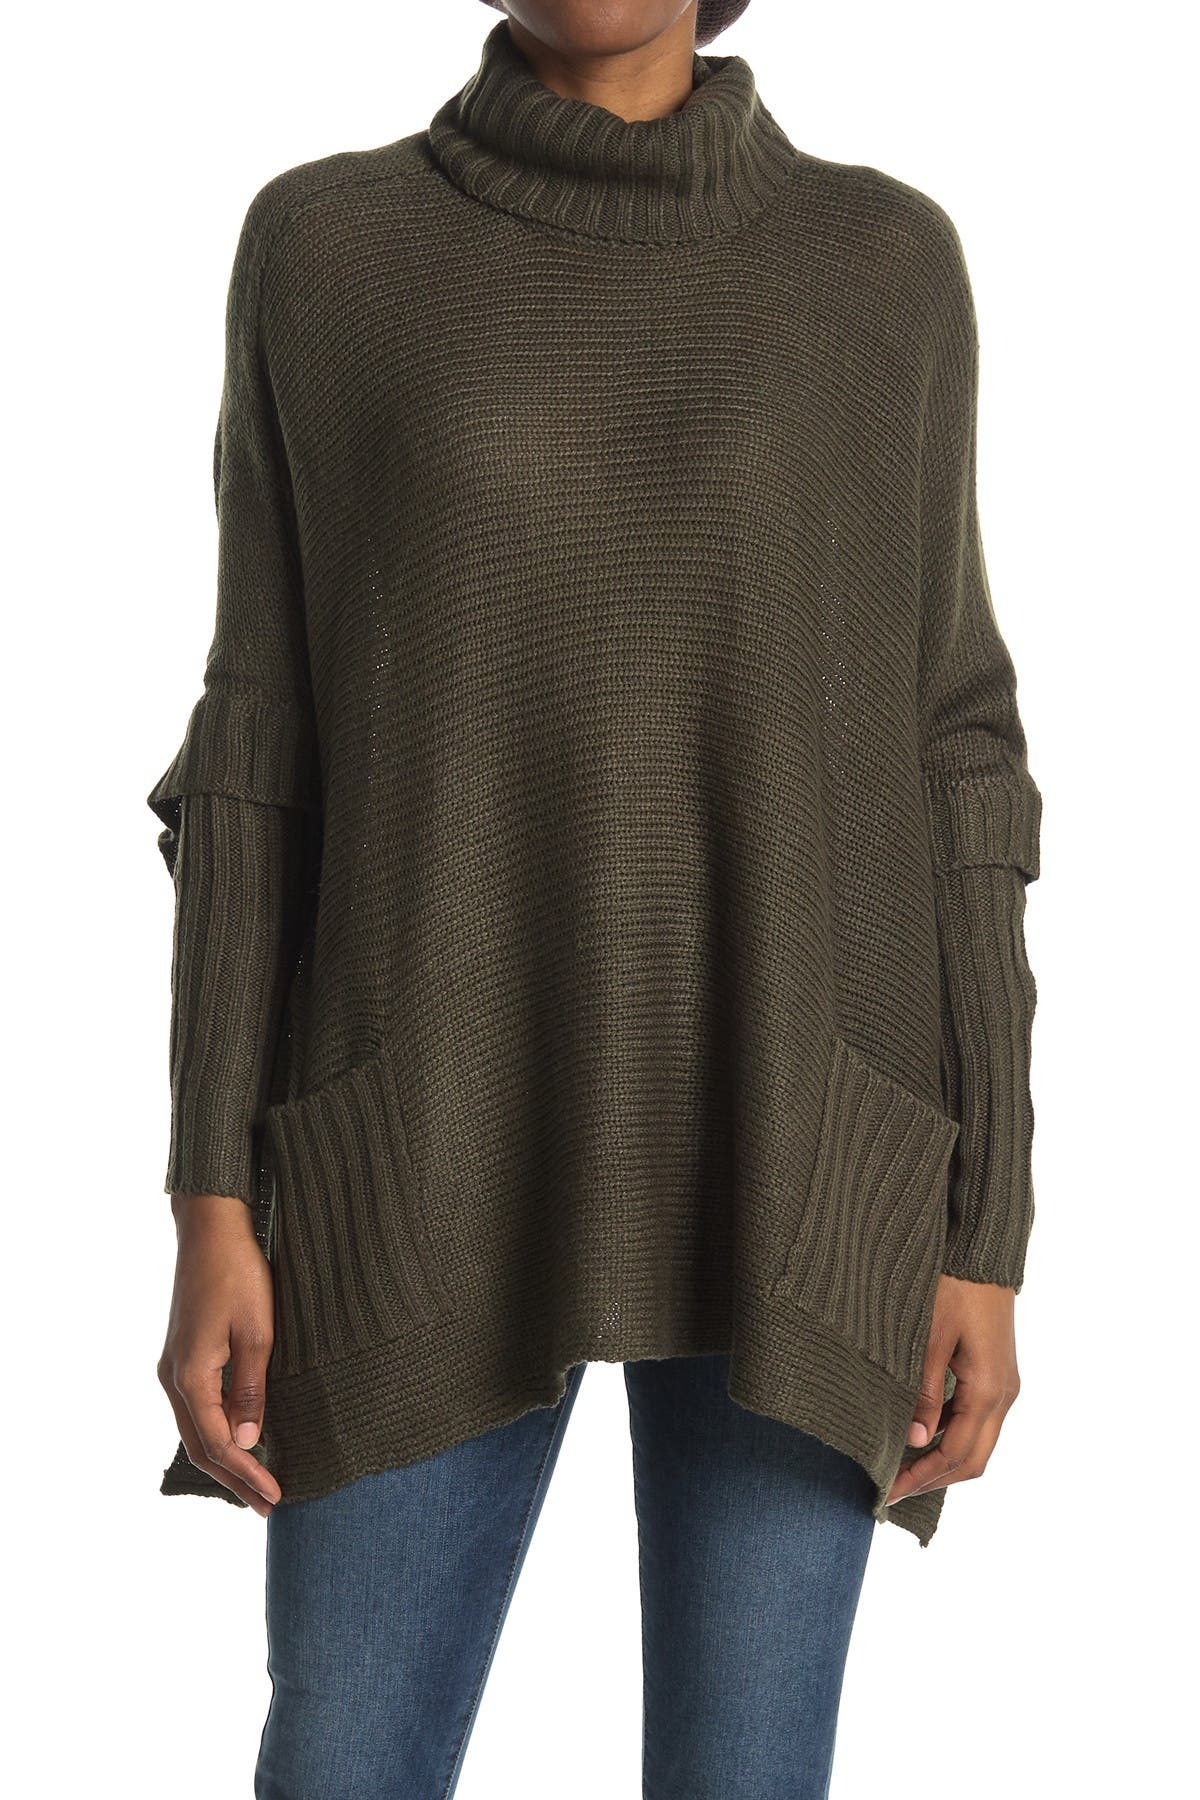 Image of Cloth By Design Long Sleeve Poncho